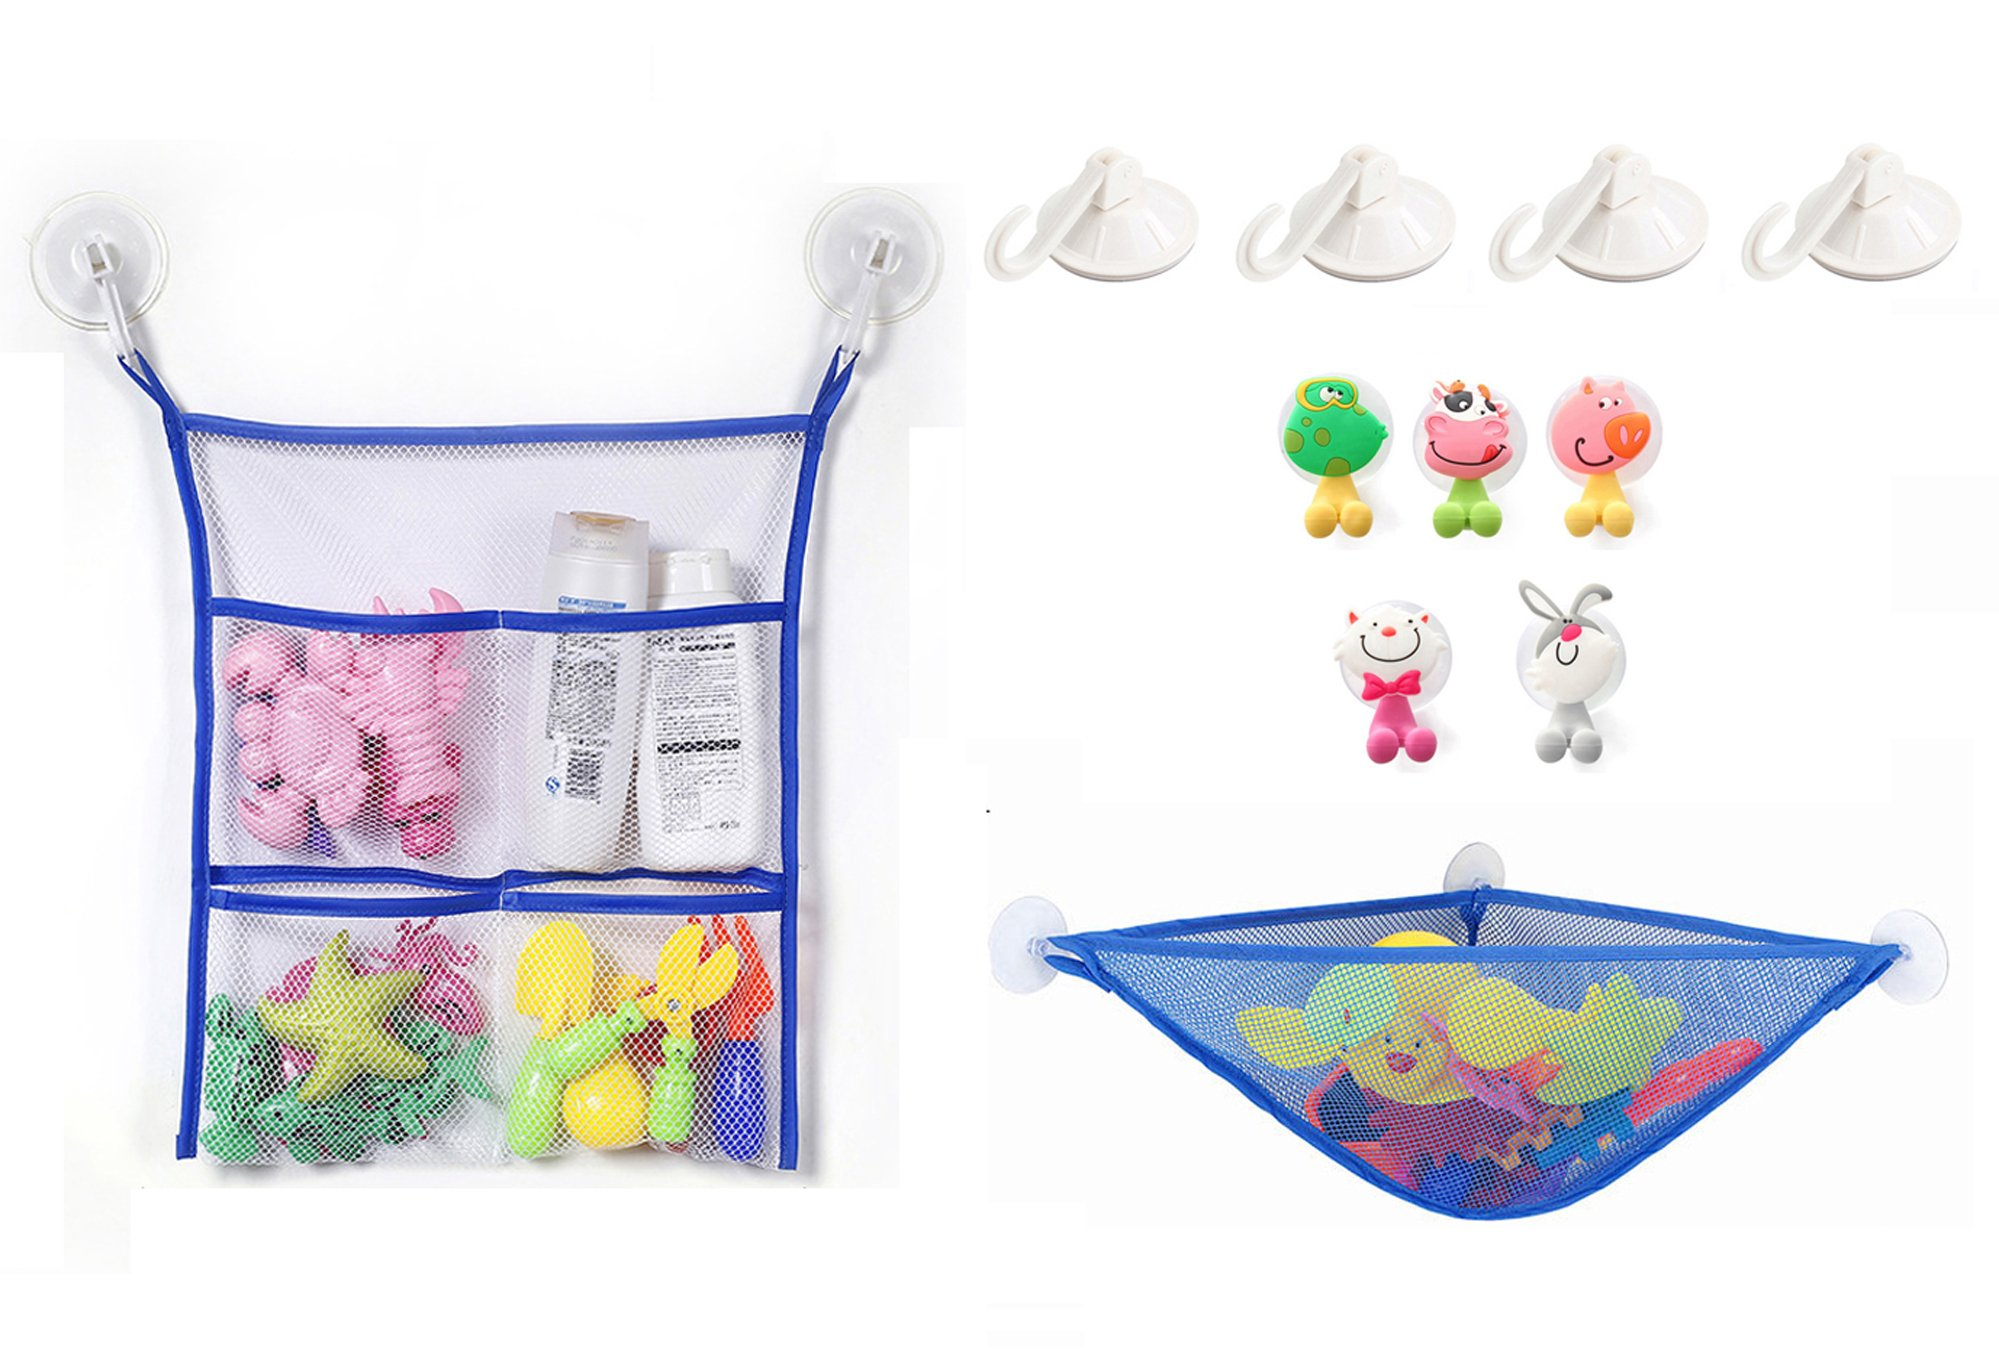 Alasida Bath Toy Organizer Set, 2 Mesh Bath Toy Storage Bag, 4 Strong Suction Cups Hook, 5 Cartoon Animal Toothbrush Holders